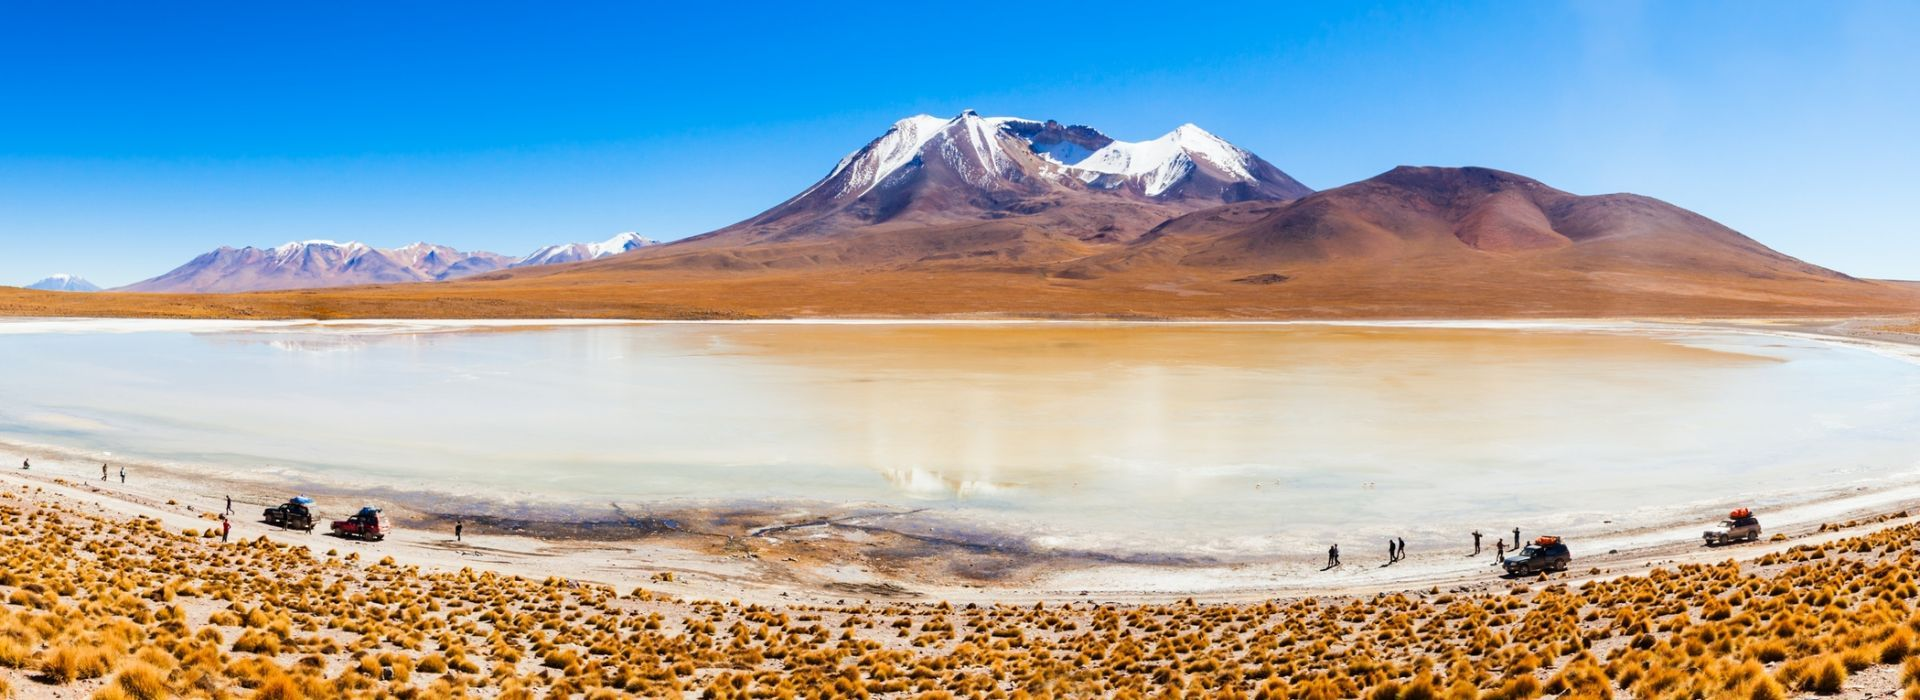 Bolivia tours and trips to Bolivia